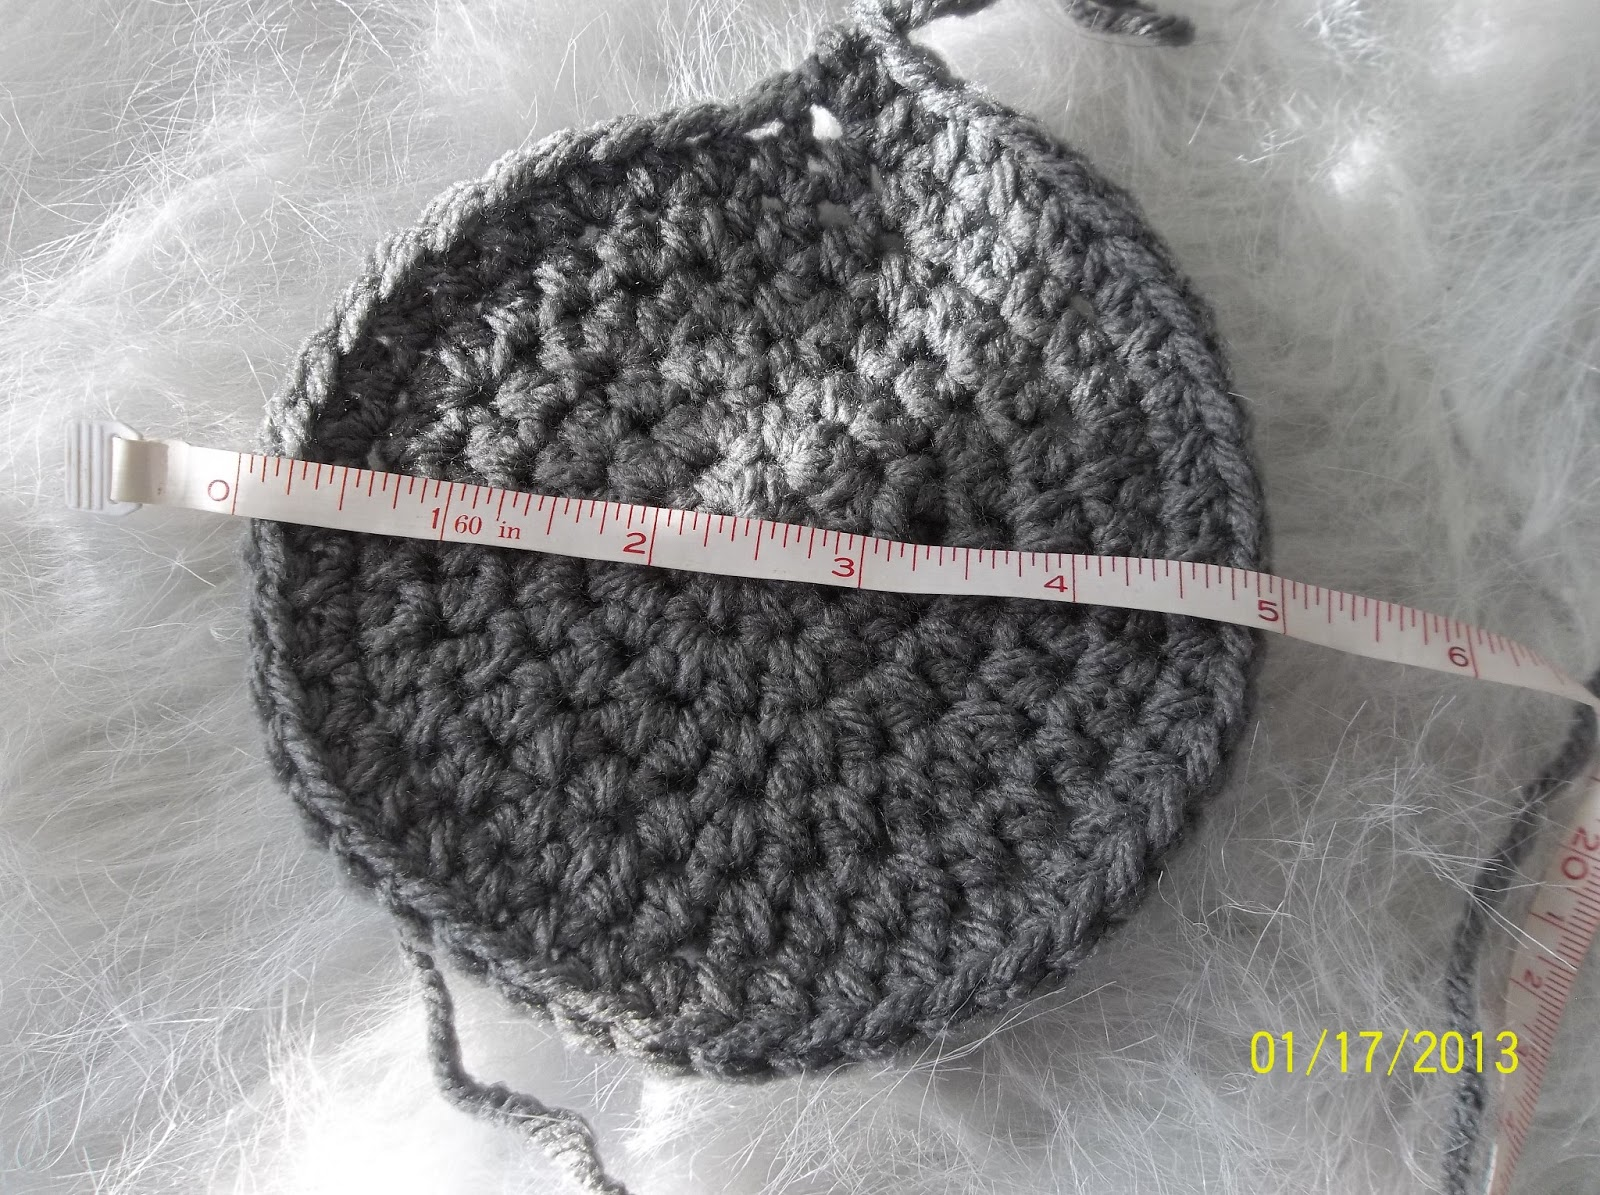 Crochet Hat Sizes : ... size crochet hats. Chart for correct sizing, including Magic Circle